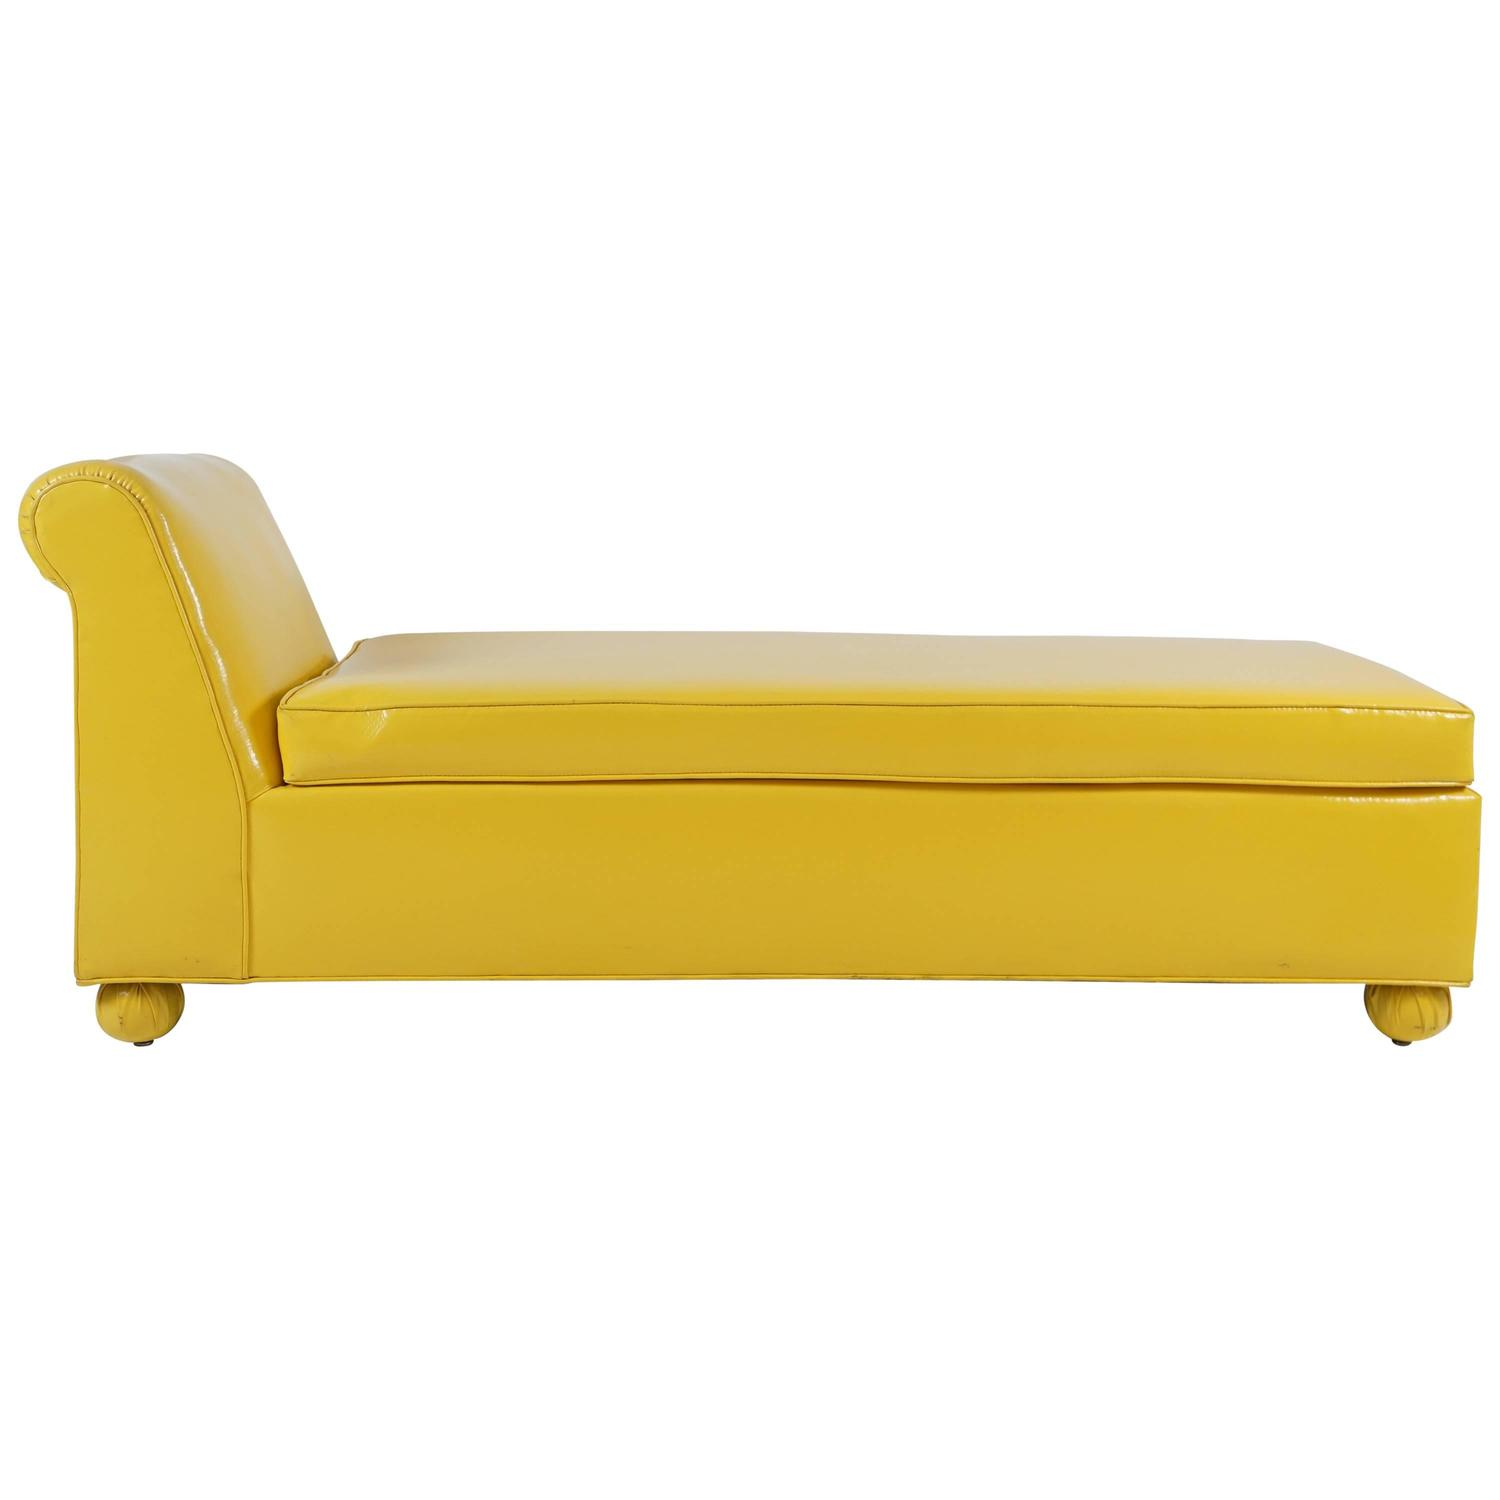 vintage yellow chaise lounge at 1stdibs. Black Bedroom Furniture Sets. Home Design Ideas